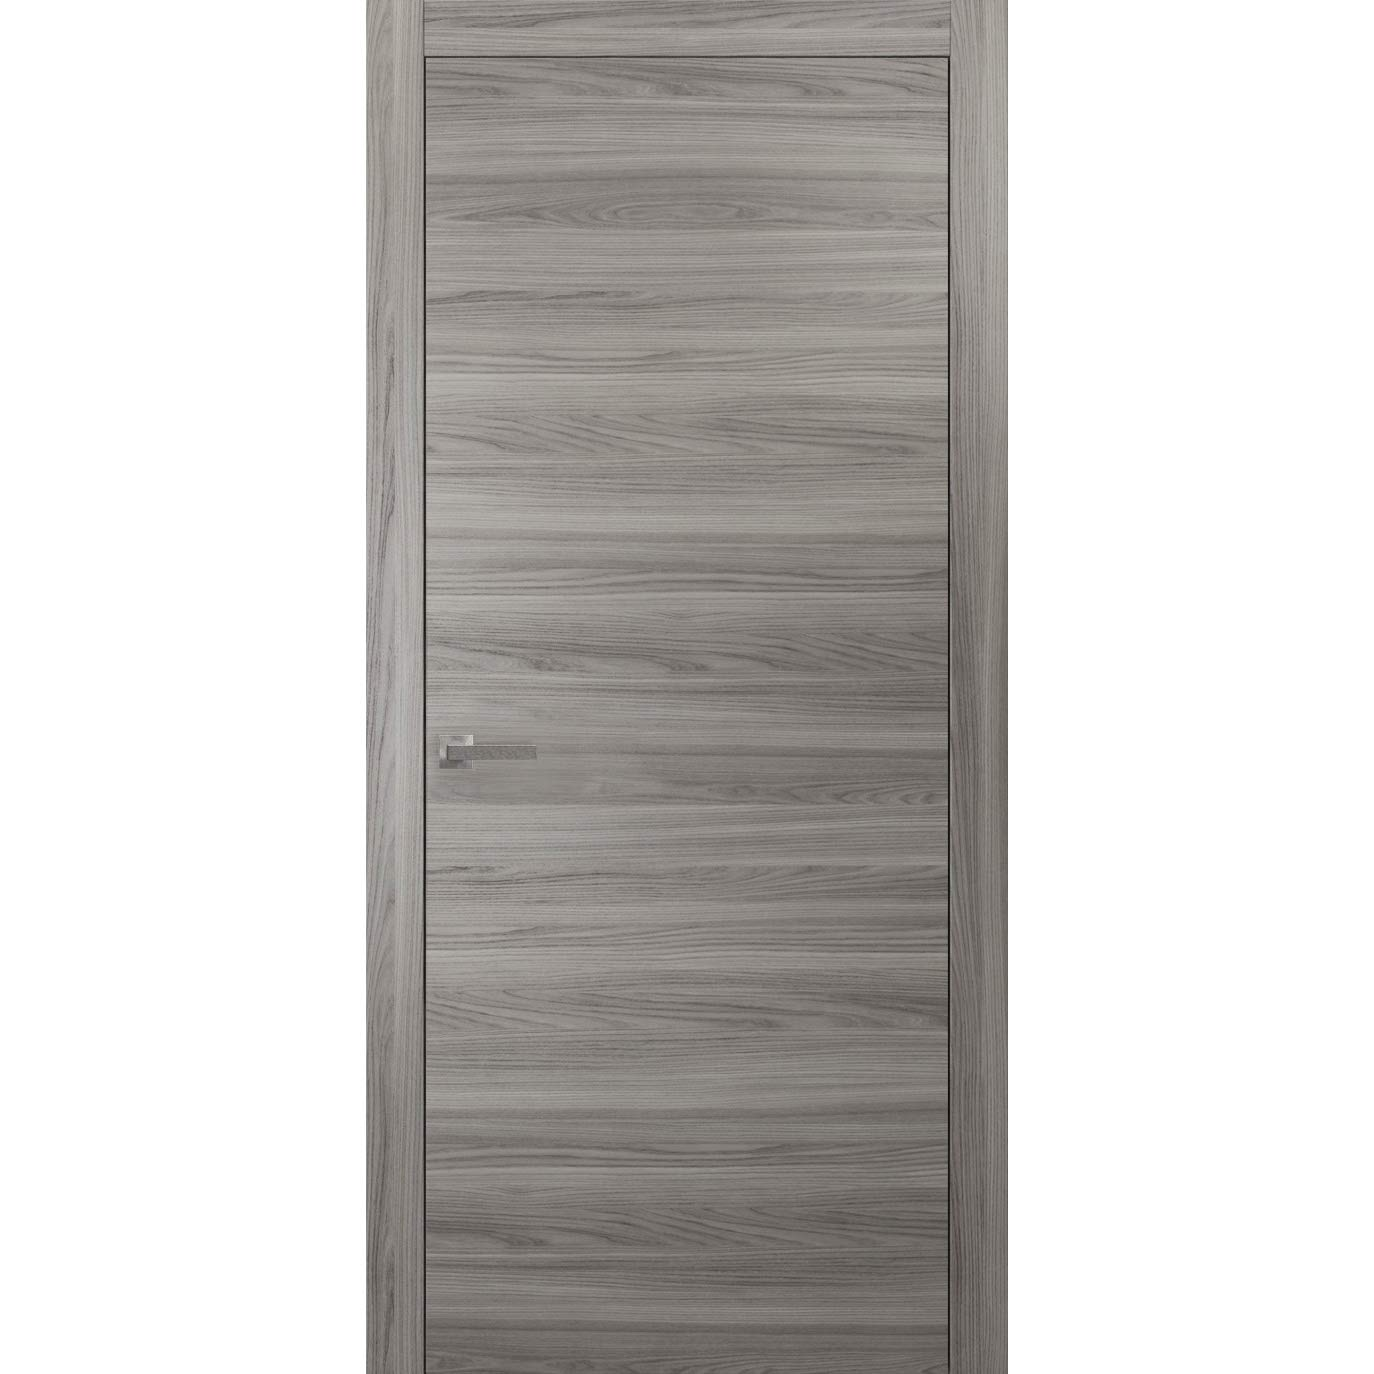 Wood Solid Door 36 x 80 inches | Planum 0010 Ginger Ash | Frame Trims Lever Hardware | Interior Modern Flush Pre-hung Grey Doors